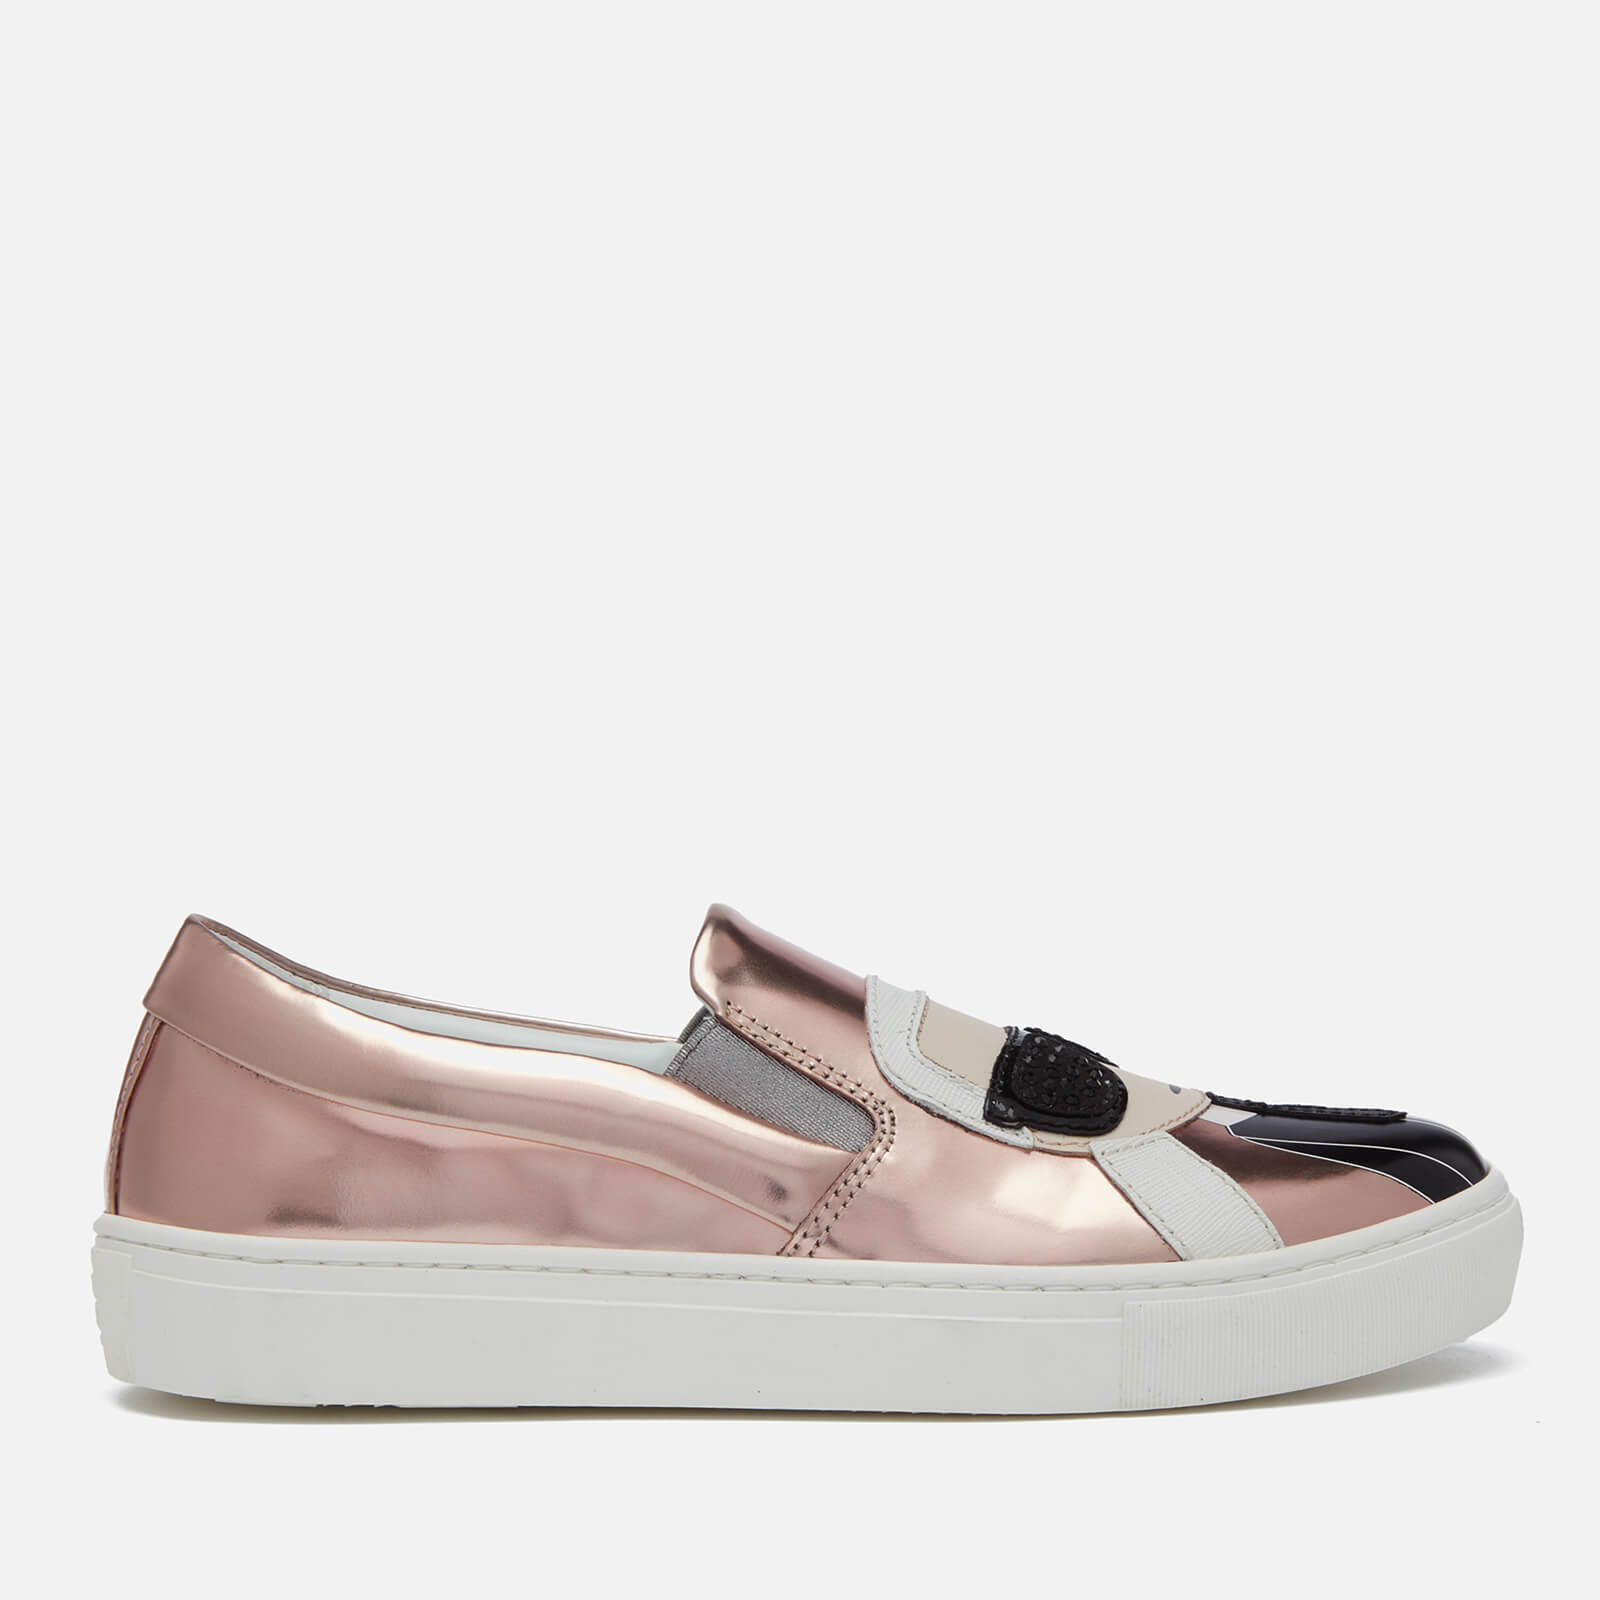 9e40ea80dde Karl Lagerfeld Women s Kupsole Leather Karl Ikonic Slip-On Trainers - Rose  Gold Mirror Womens Footwear